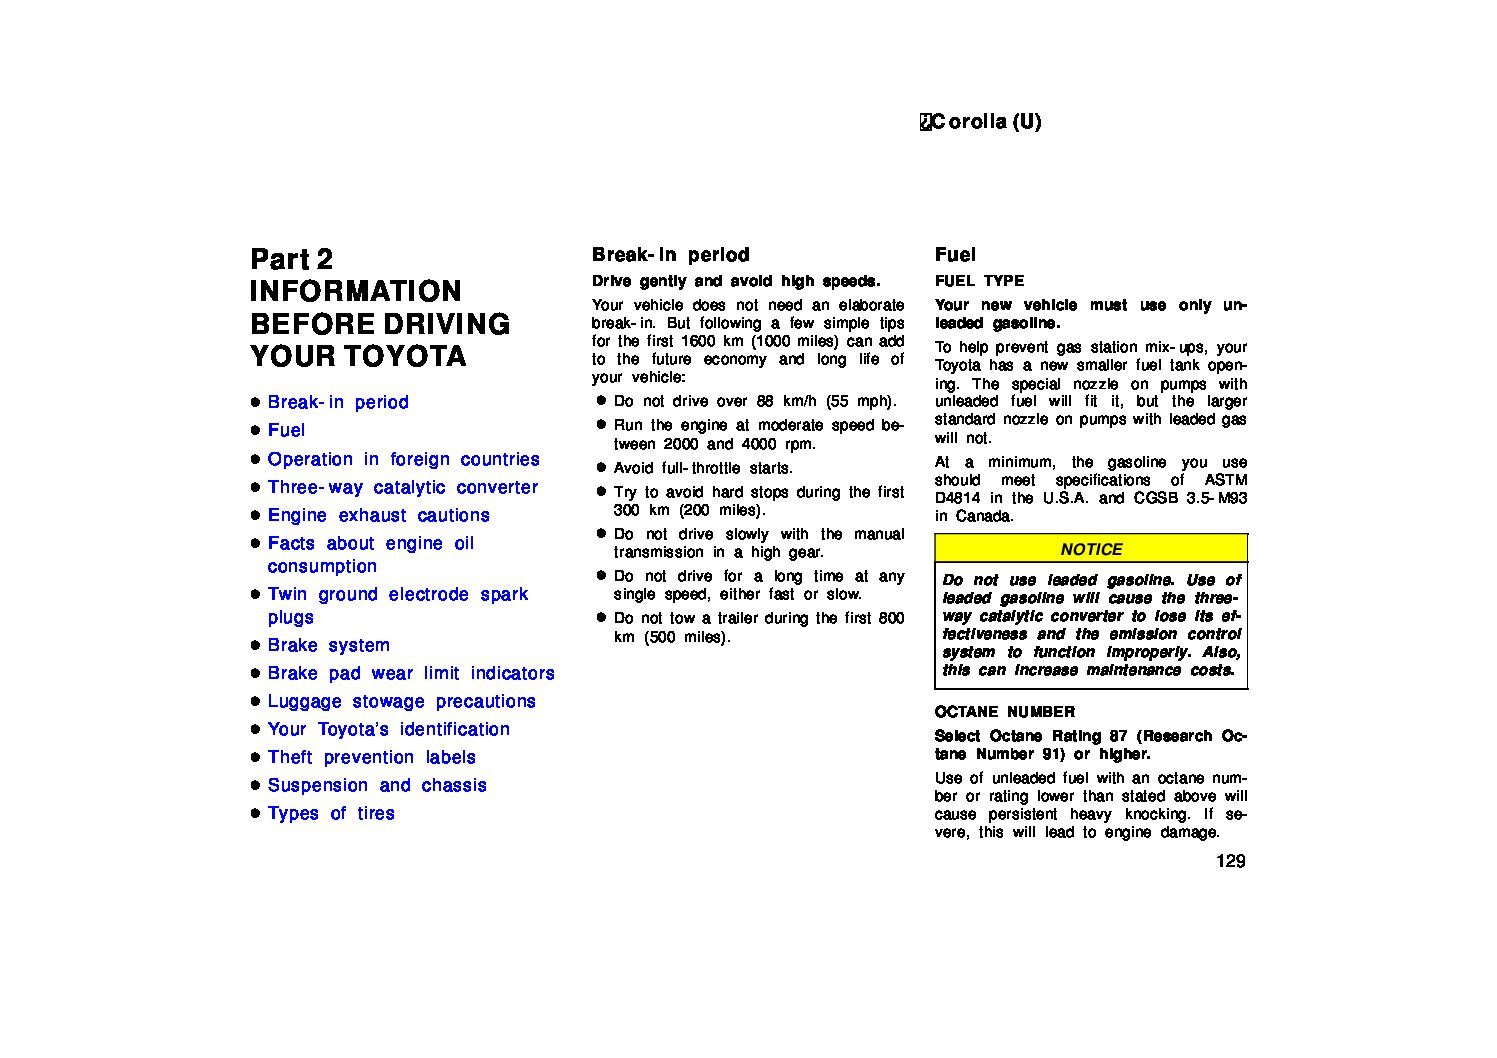 Toyota Corolla Repair Manual: Precaution